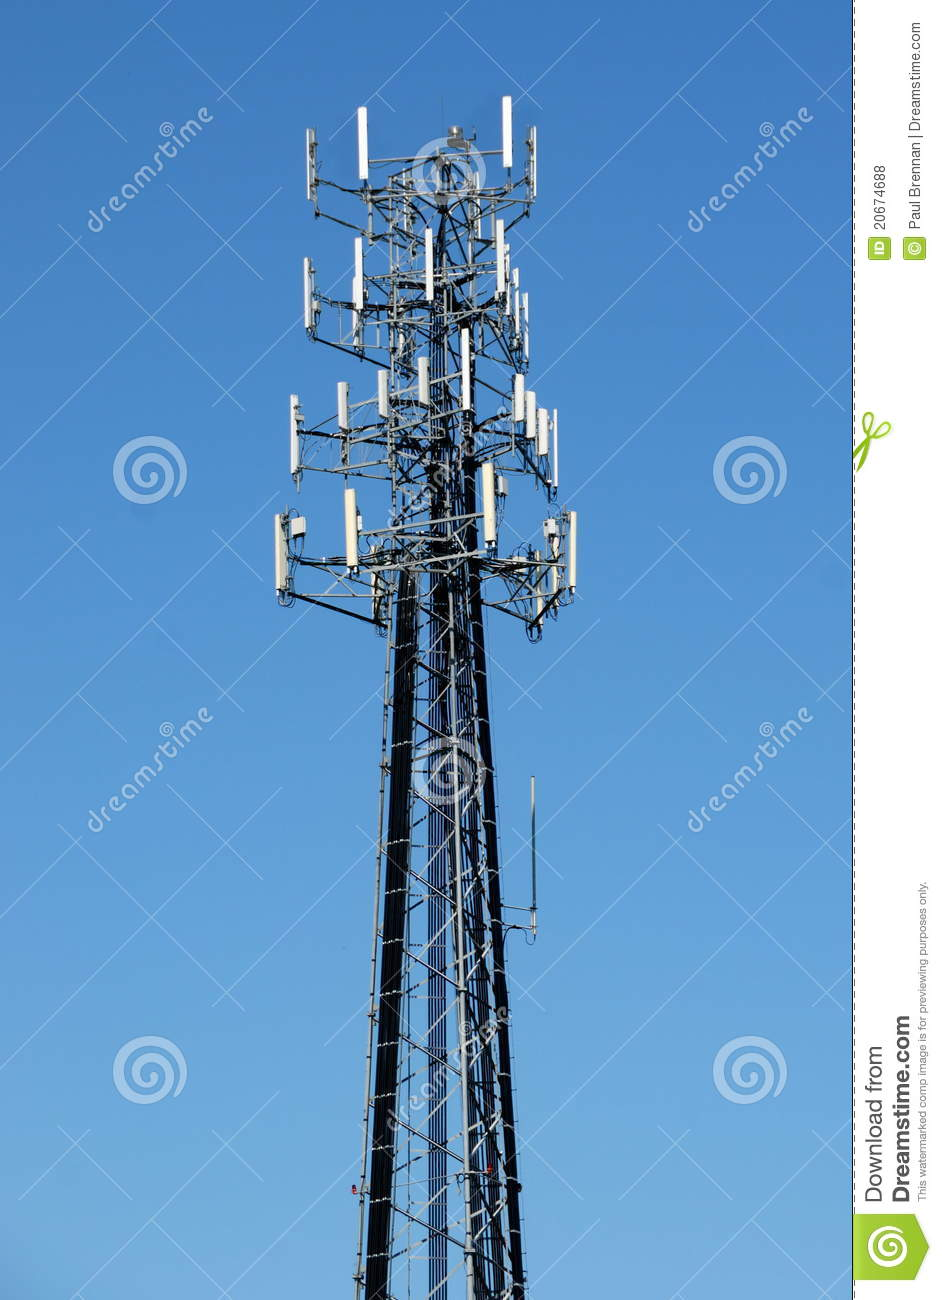 Tall Cell Tower Royalty Free Stock Photos - Image: 20674688: www.dreamstime.com/royalty-free-stock-photos-tall-cell-tower...